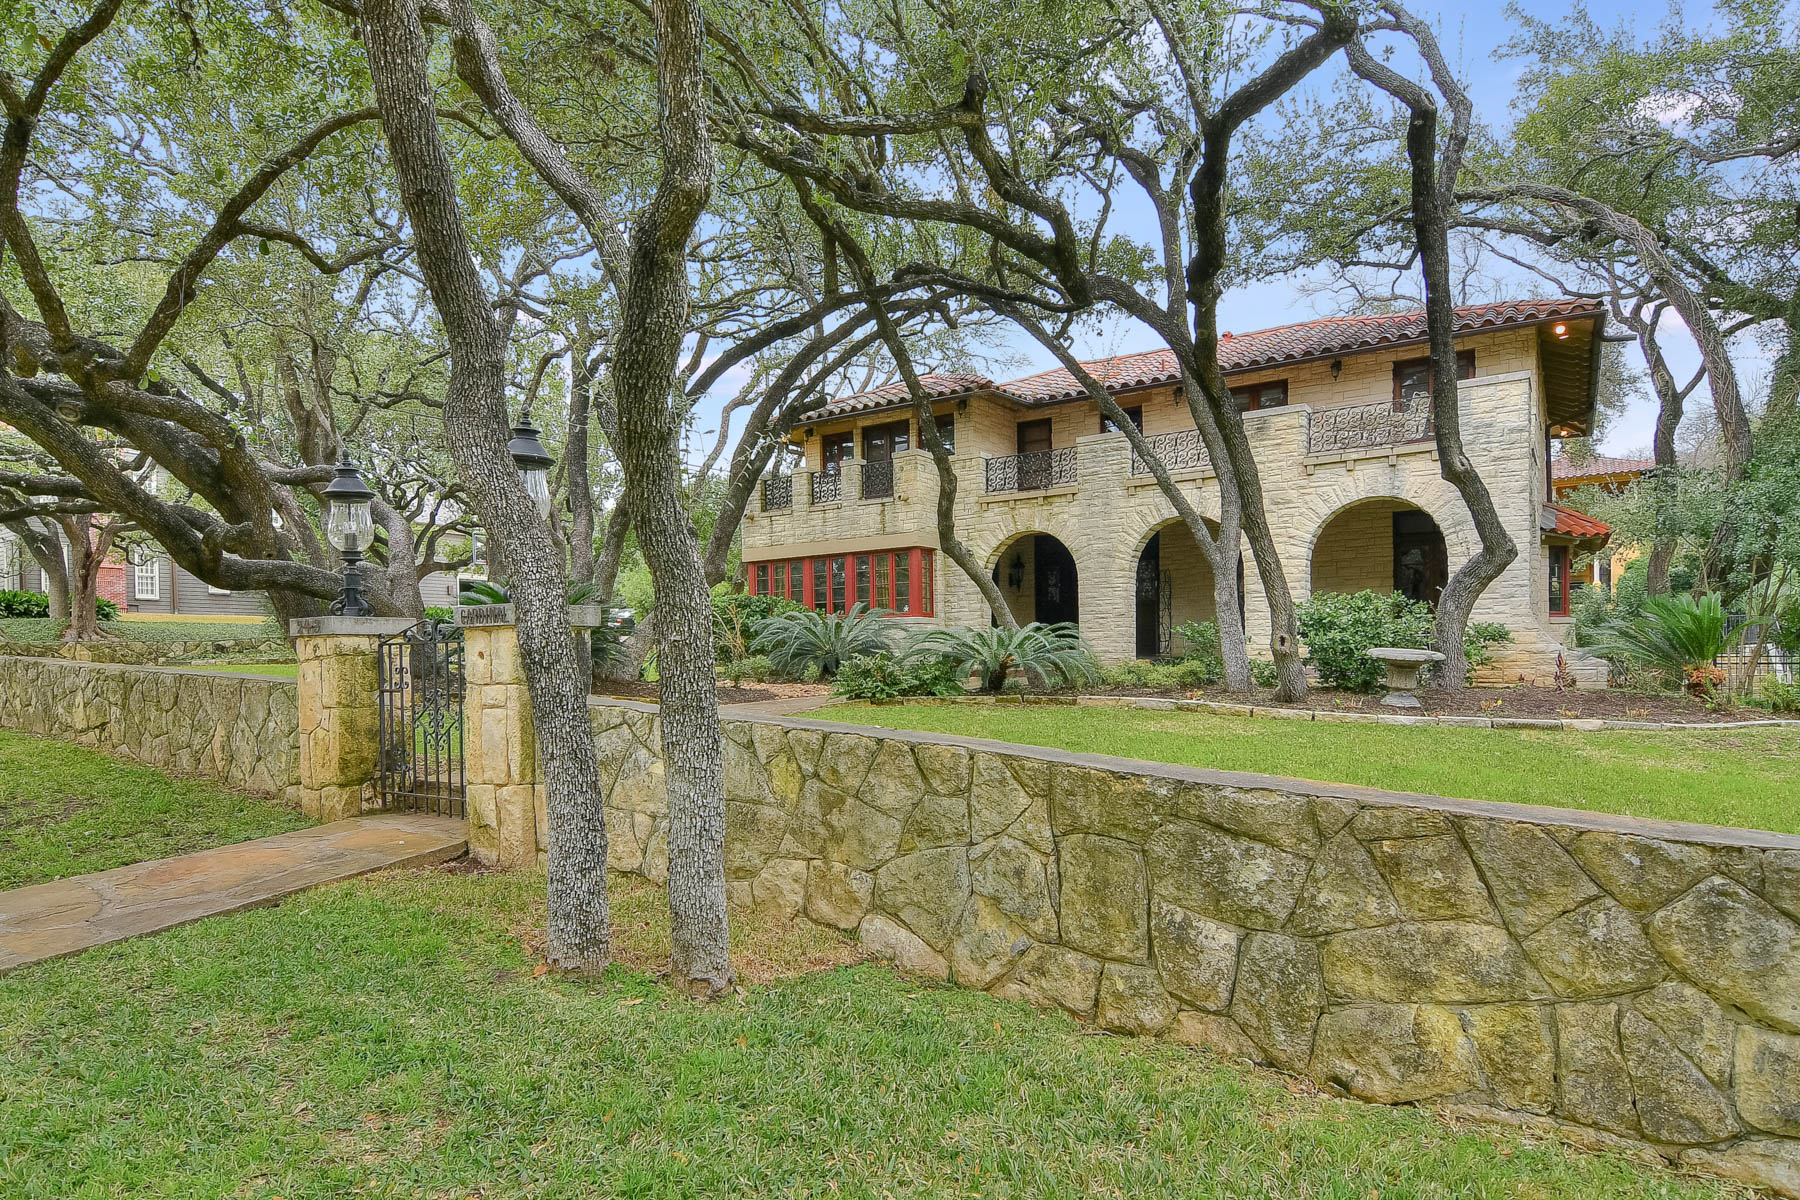 Single Family Home for Sale at Gorgeous Monterrey Colonial in Alamo Heights 243 Cardinal Ave San Antonio, Texas 78209 United States